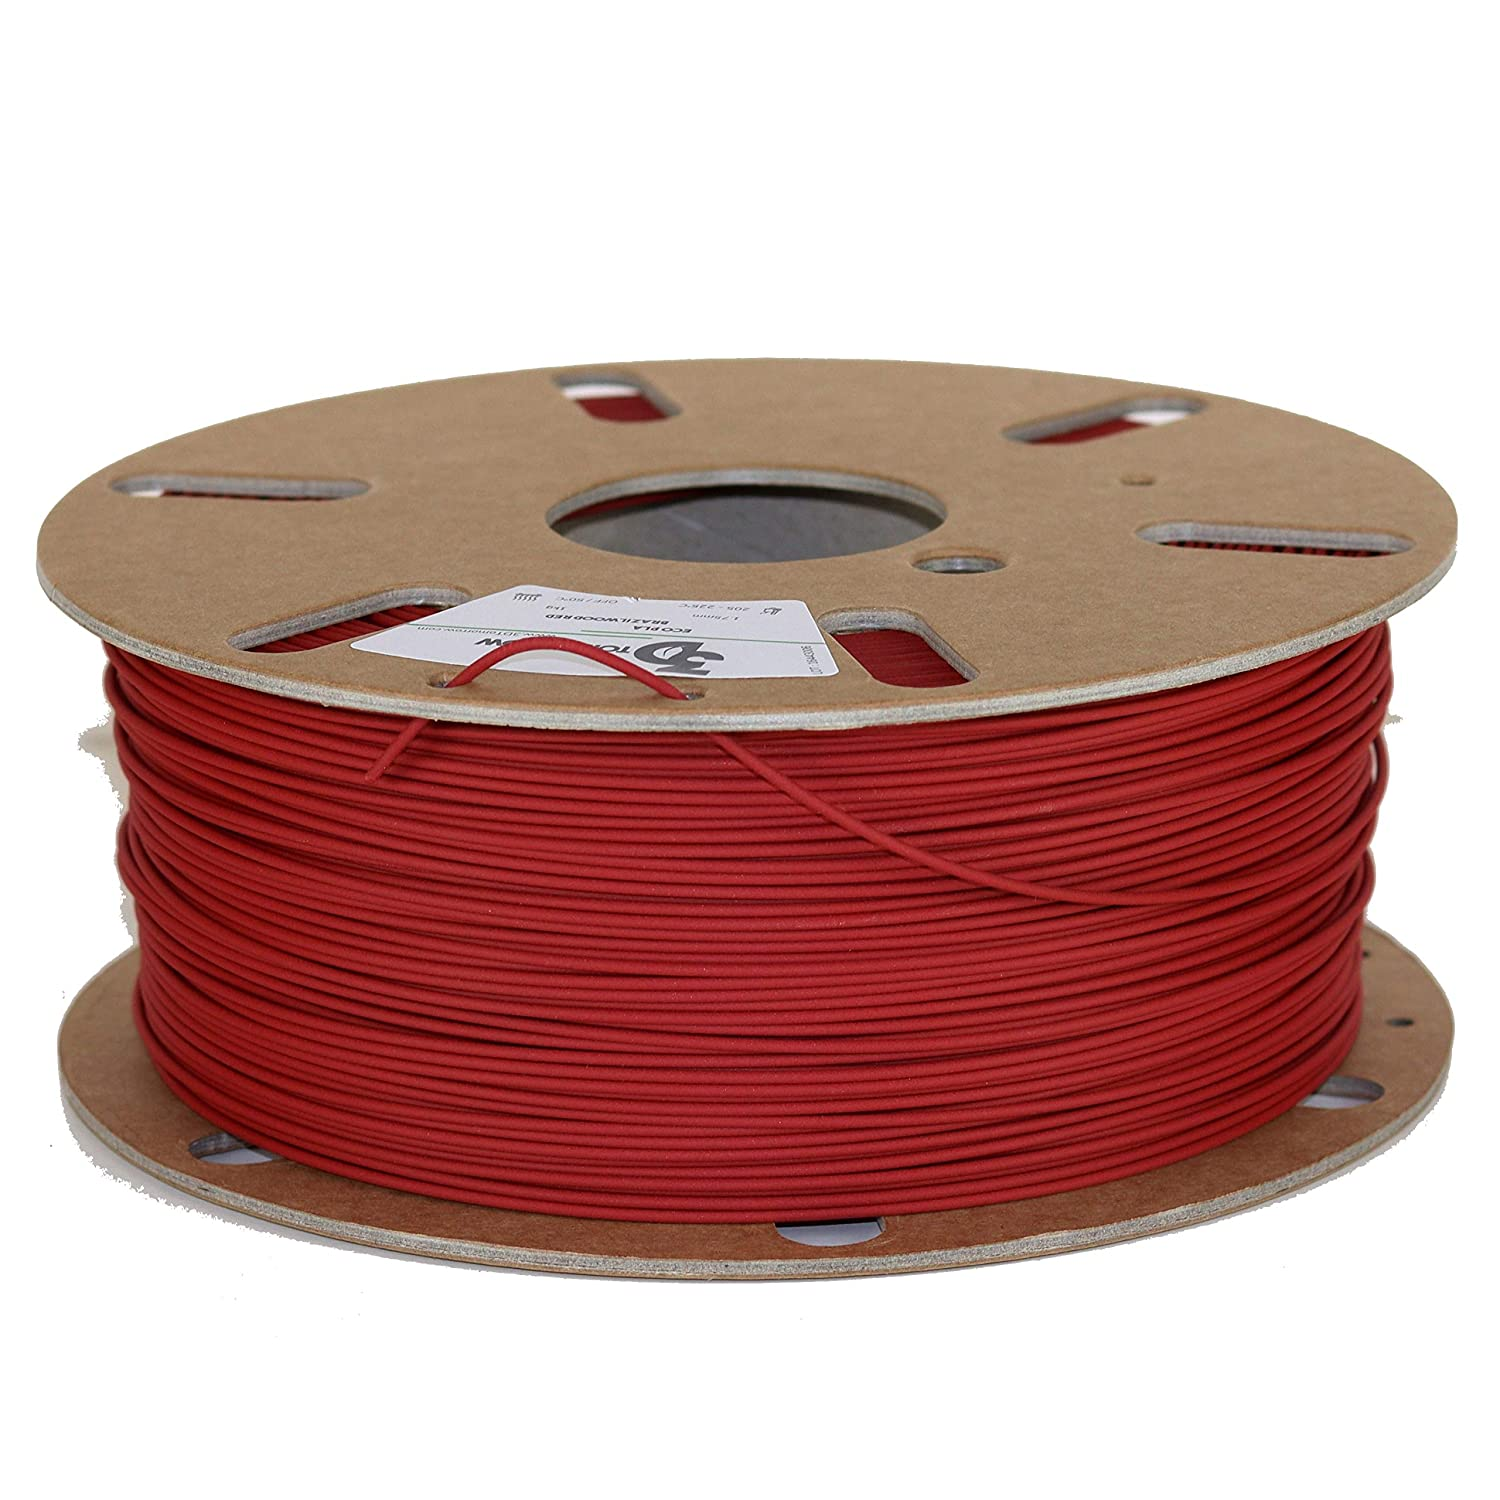 3DTomorrow Brazilwood Red Eco PLA Filament 1.75mm Eco Friendly 3D Printer Filament Matte PLA Contains recycled PLA 100/% Recyclable Cardboard Spool